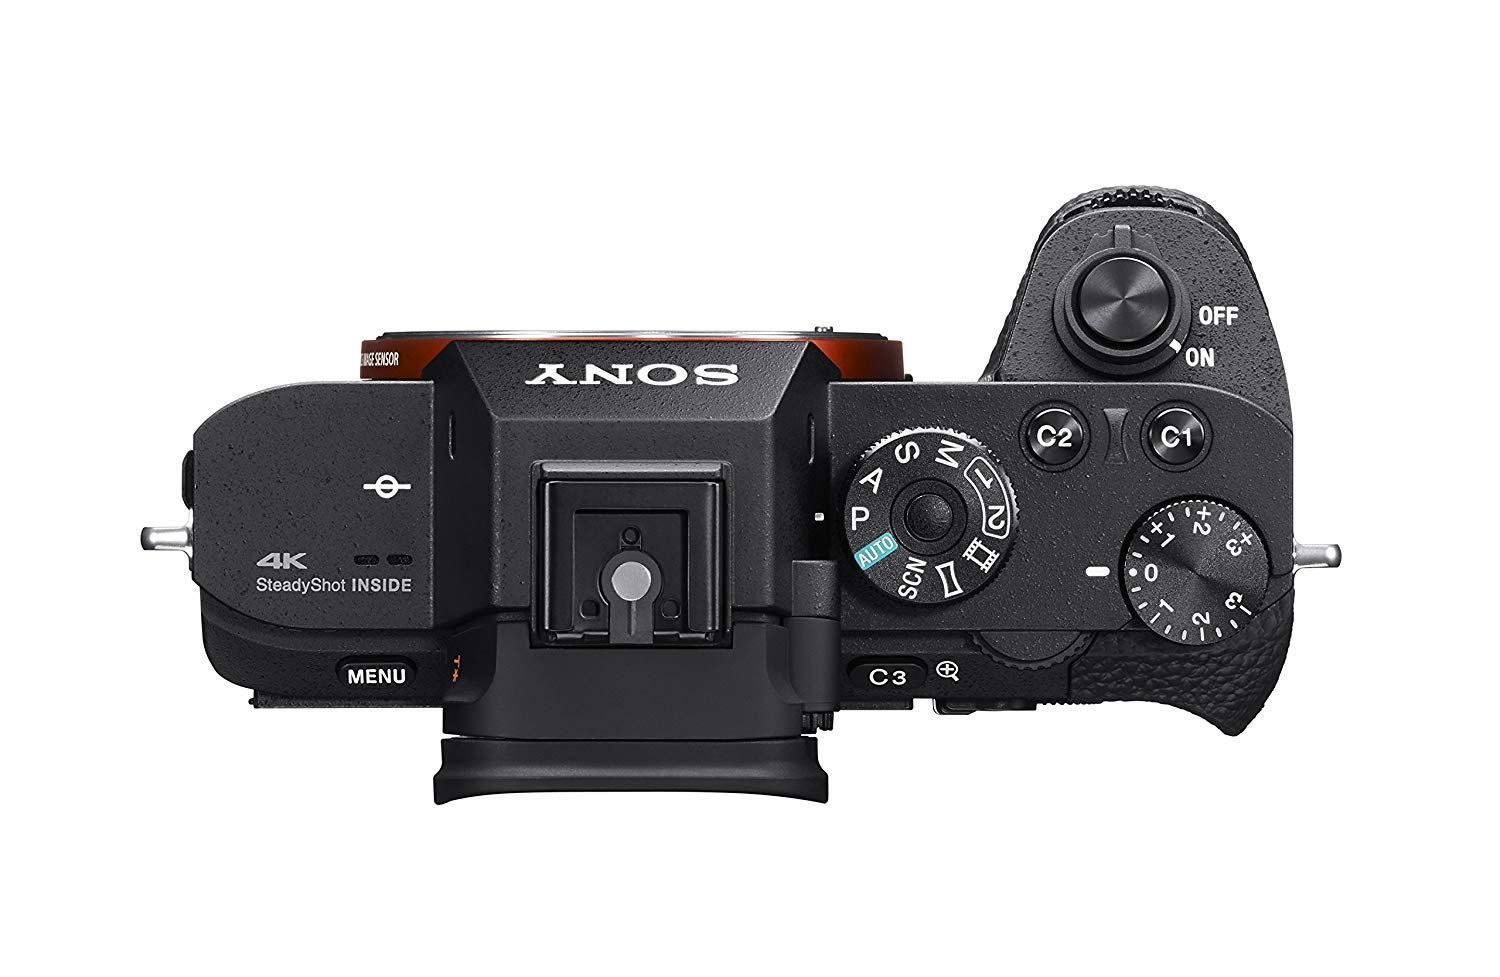 sony a7s iii video features image